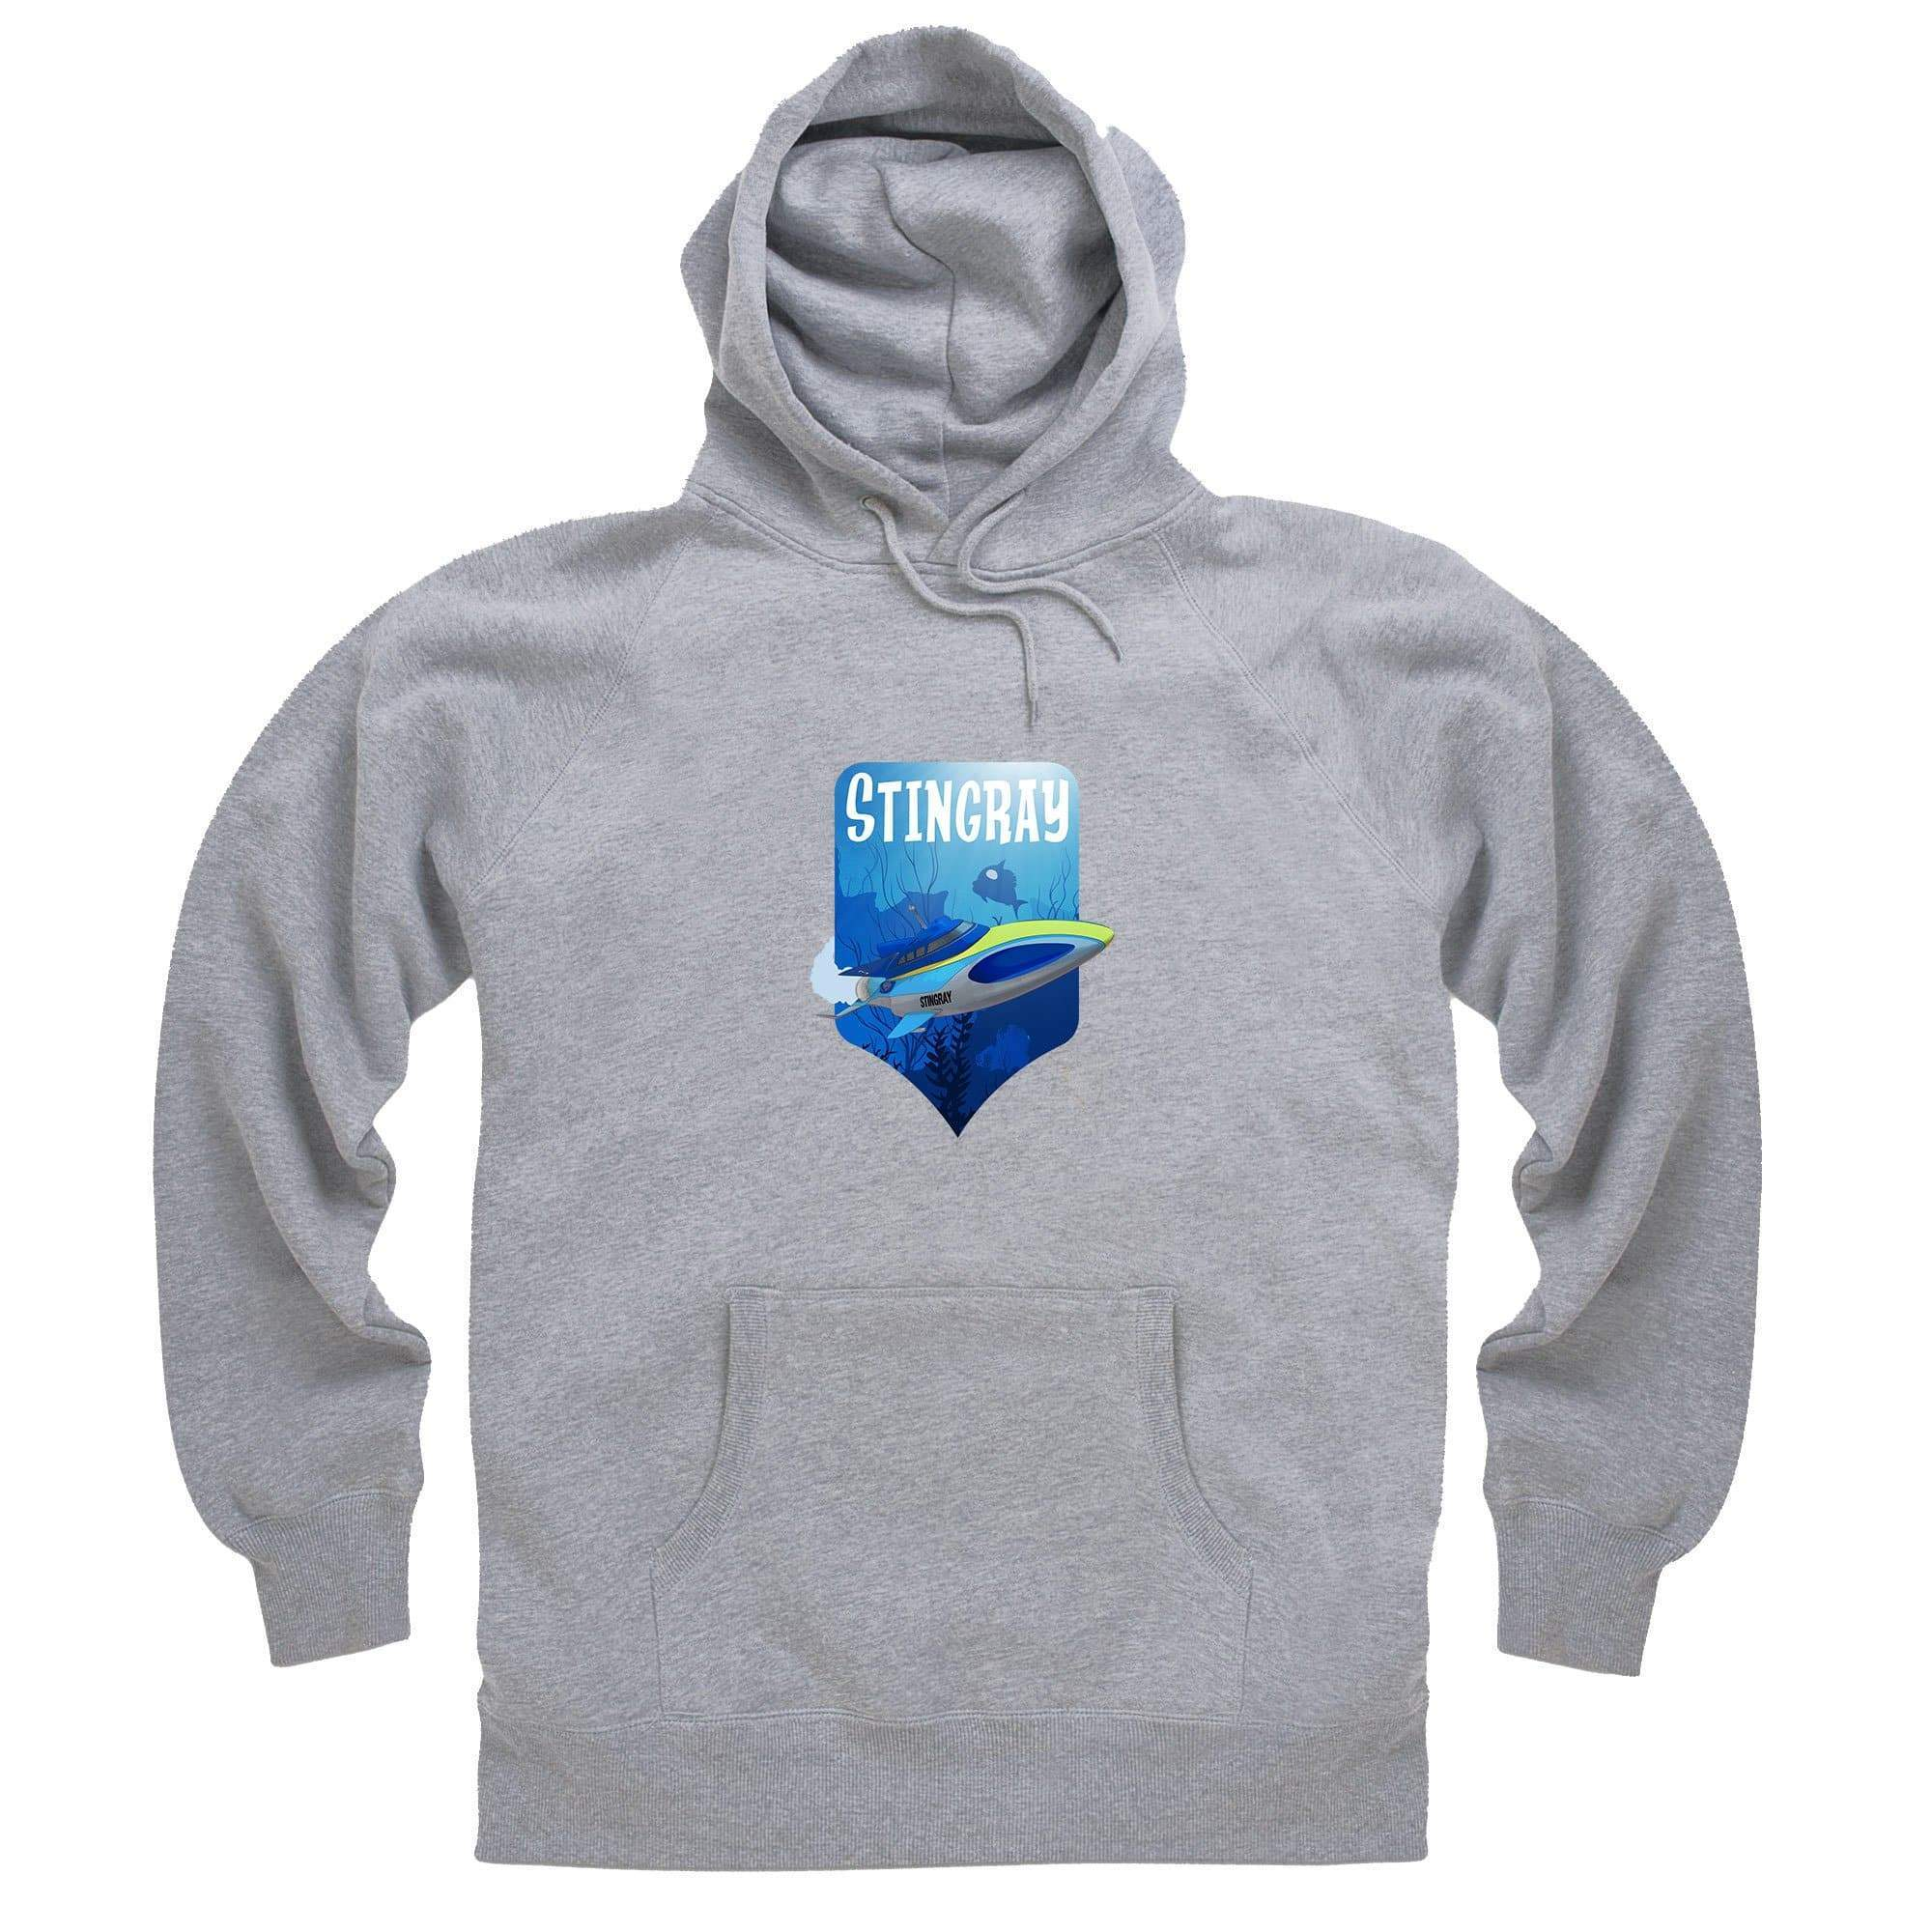 Stingray Dives Under The Sea Hoodie [Official & Exclusive] - The Gerry Anderson Store